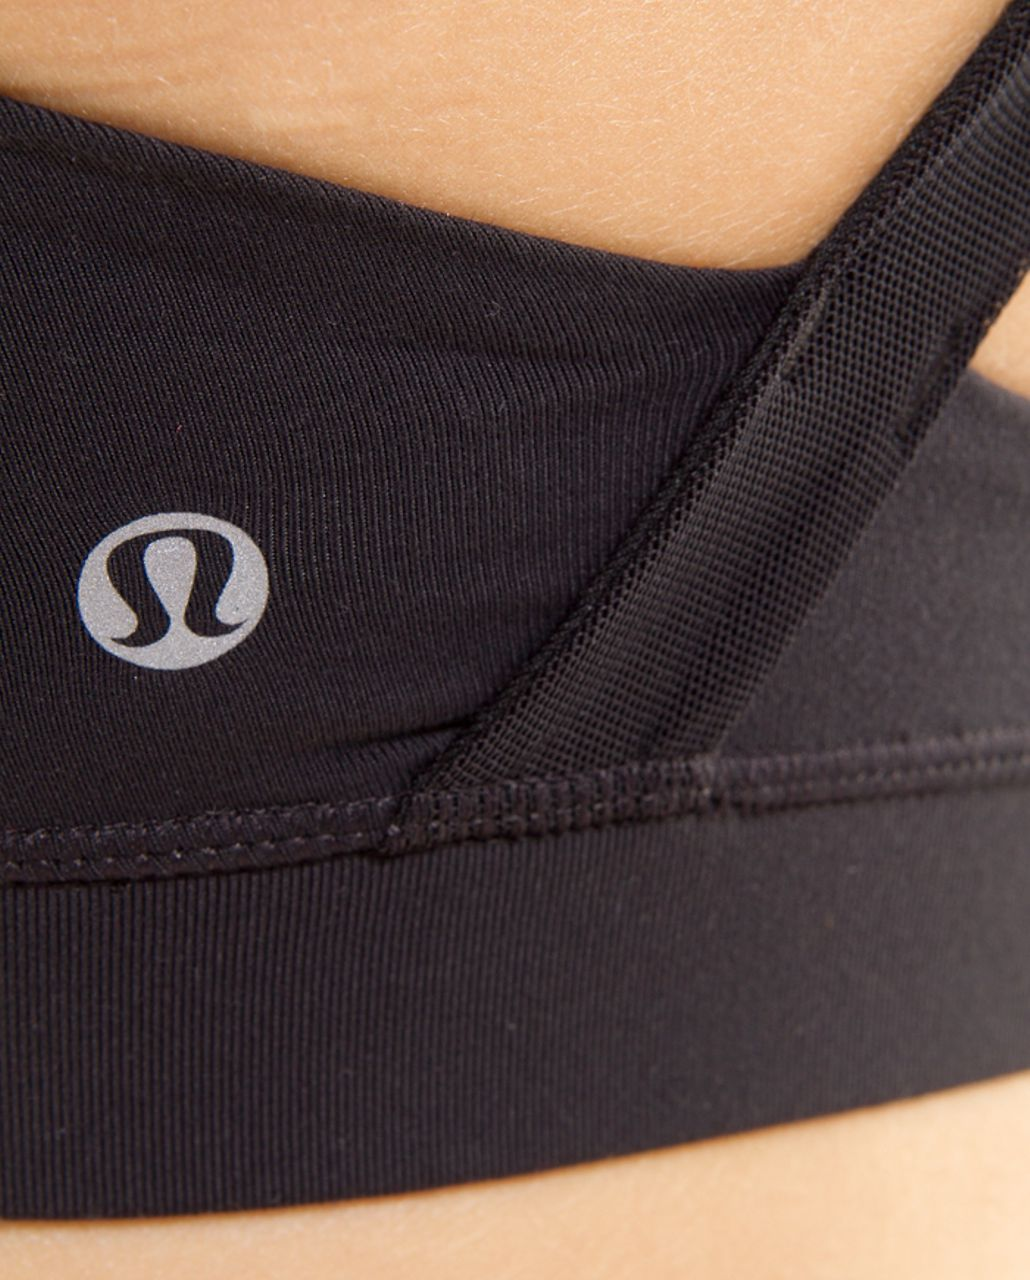 Lululemon 50 Rep Bra - Black